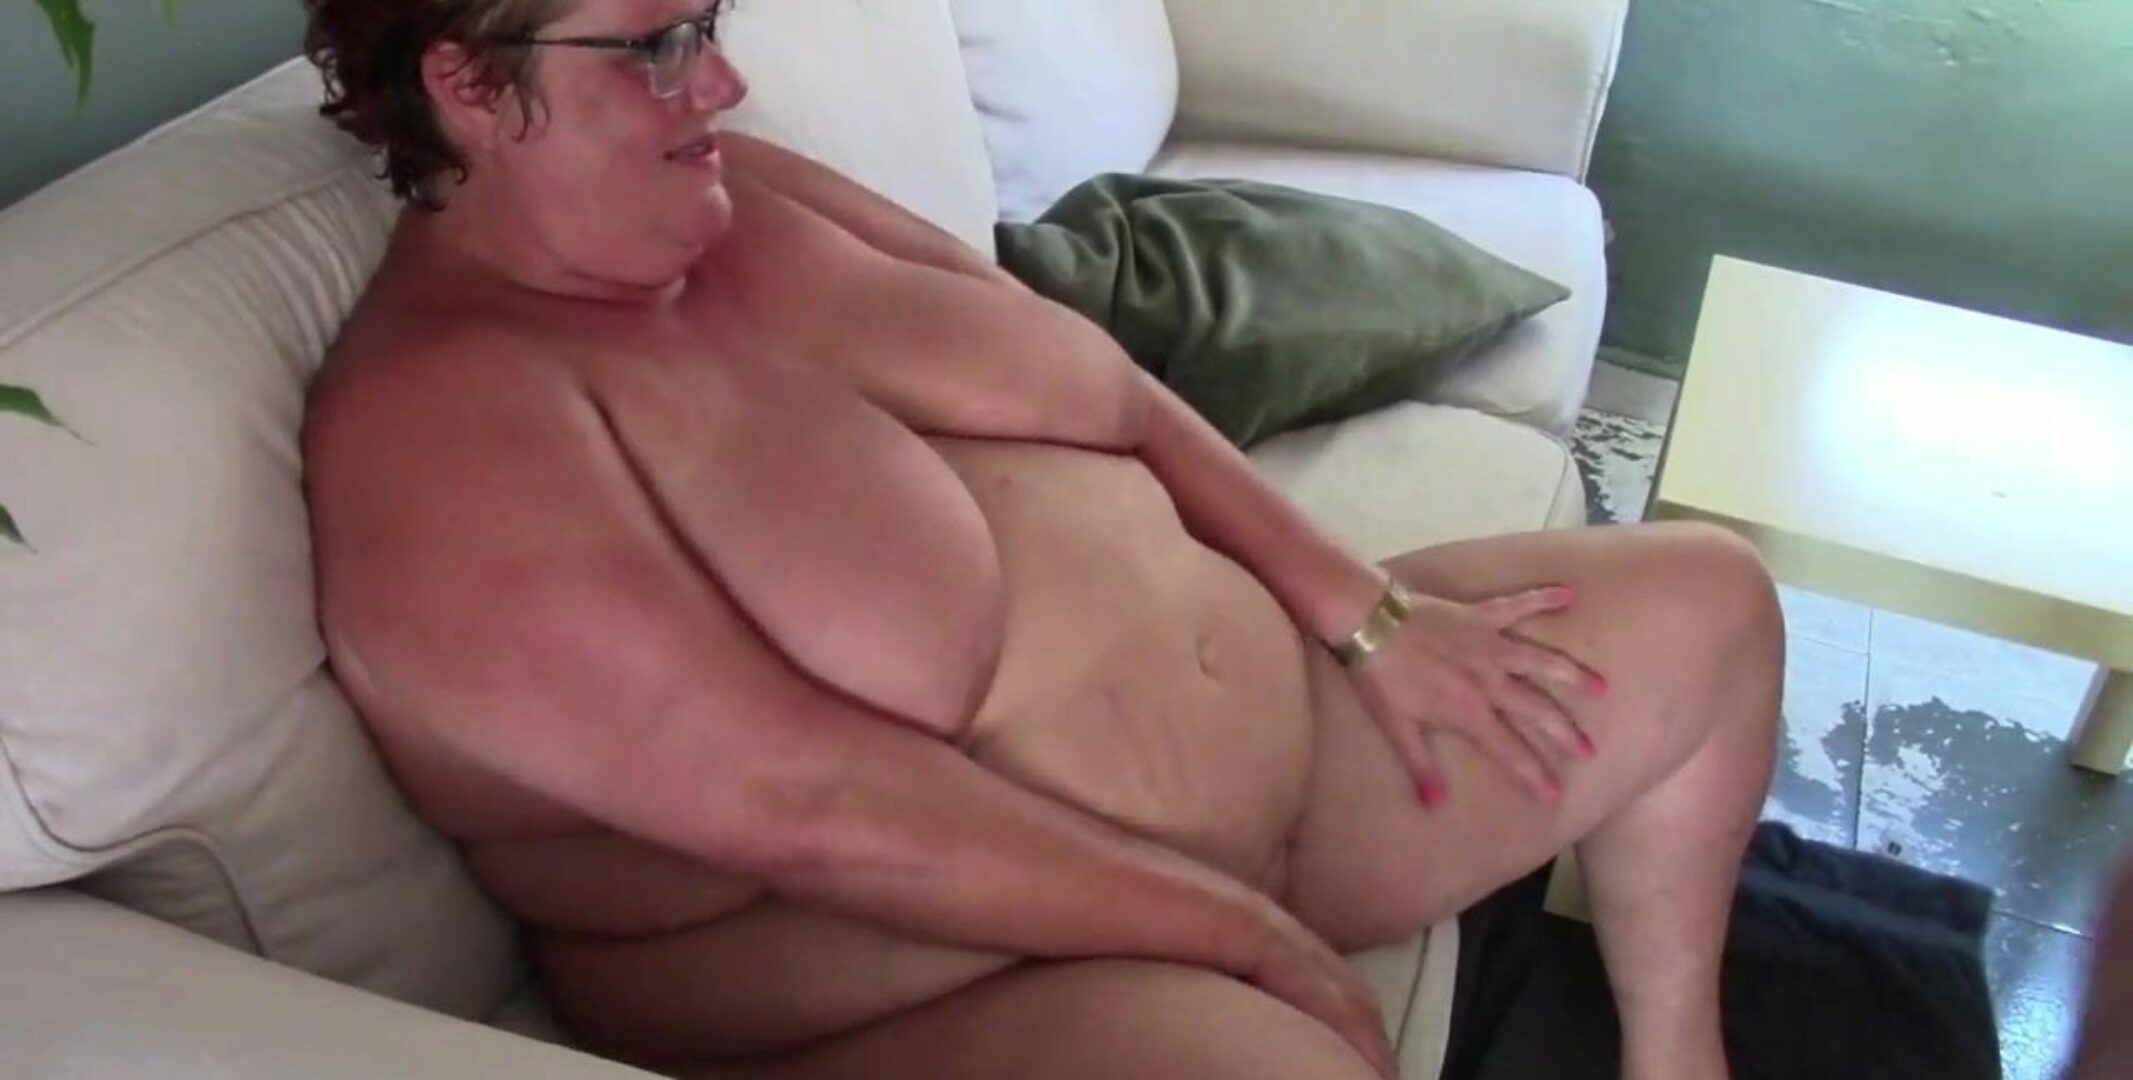 50yo Mature Granny Wife Fucked with Cumshot on Her Belly Watch 50yo Mature Granny Wife Fucked with Cumshot on Her Belly clip on xHamster - the ultimate bevy of free-for-all Granny Iphone & Granny List HD pornography tube clips